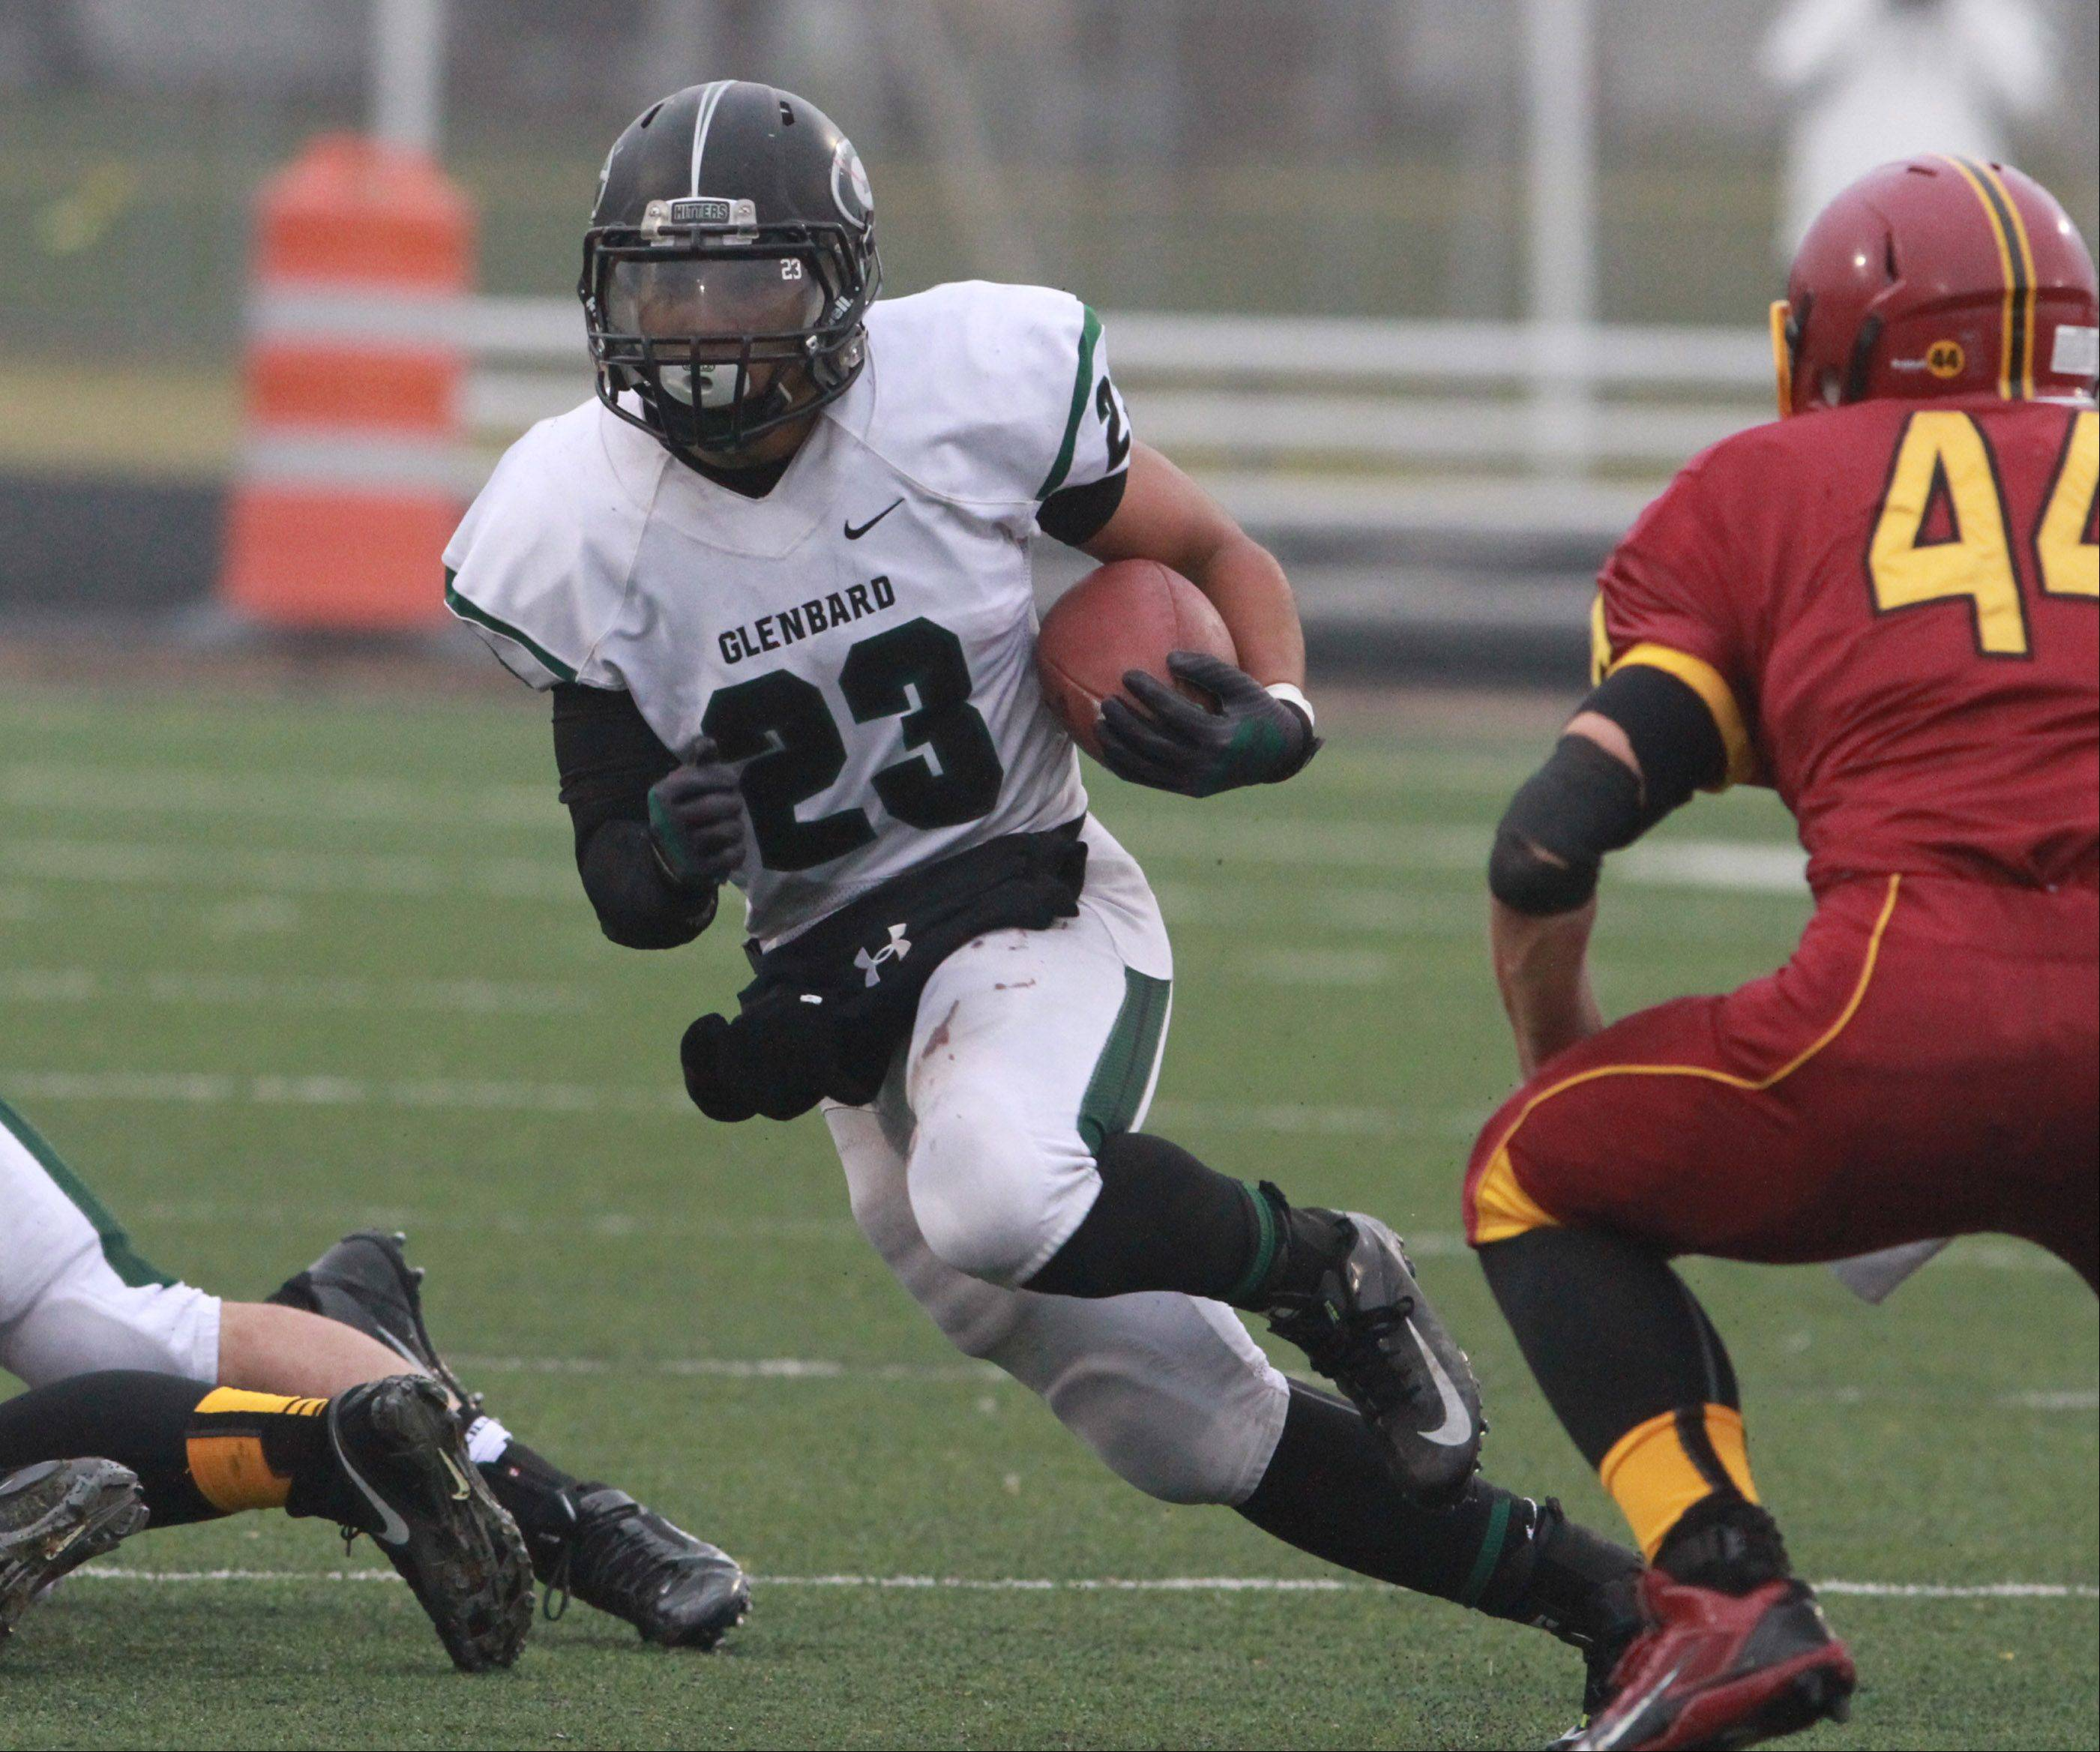 Glenbard West running back Scott Andrews runs the ball against Schaumburg.